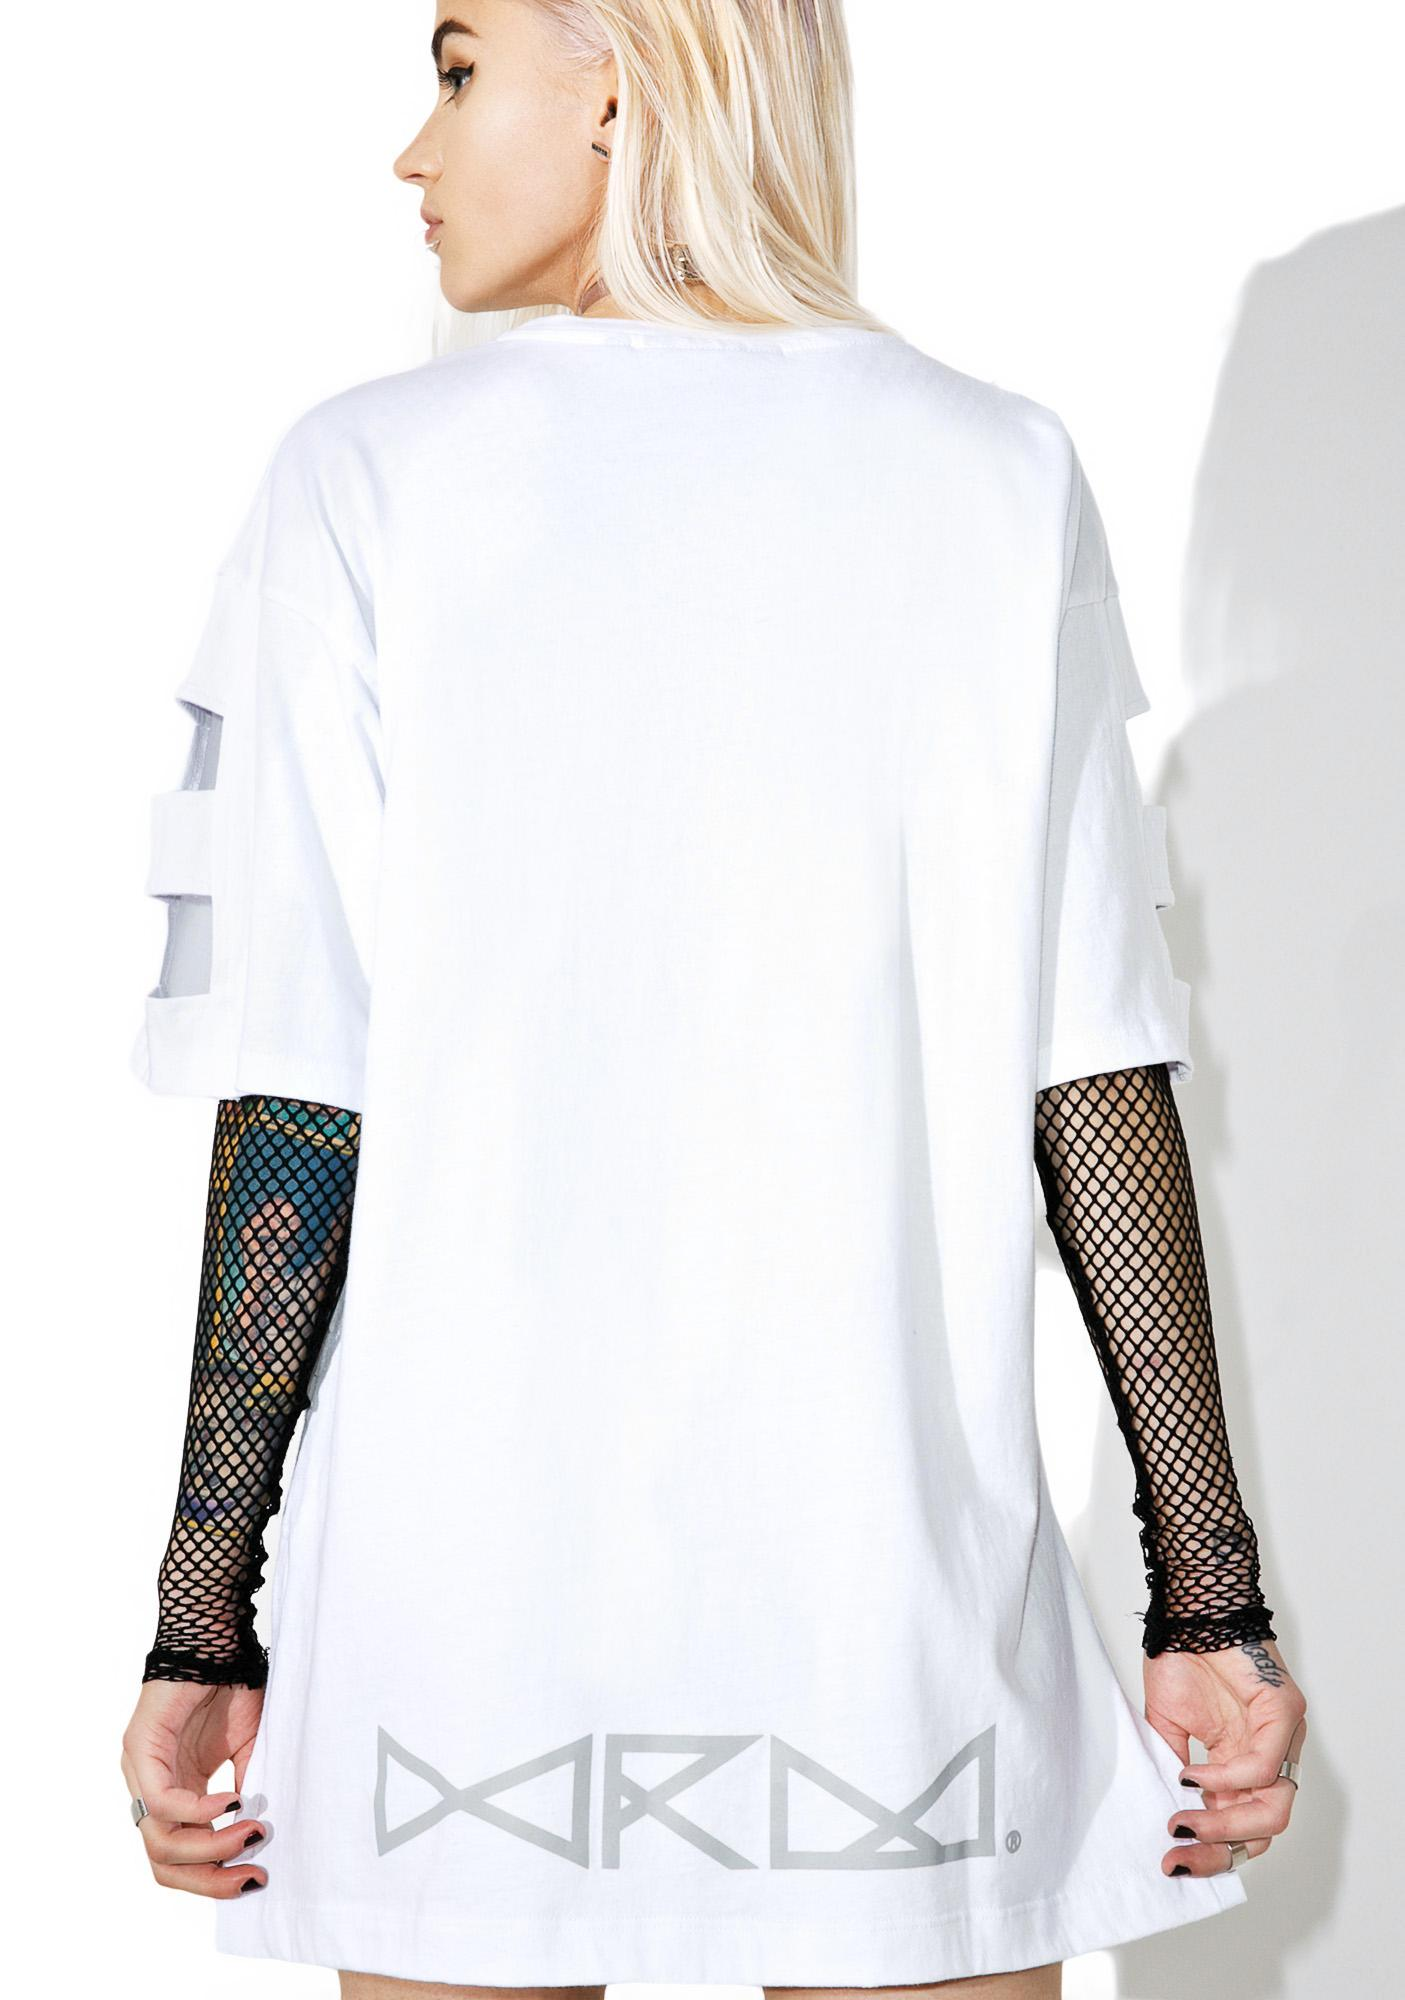 We Are Mortals Cutout Crewneck Tee